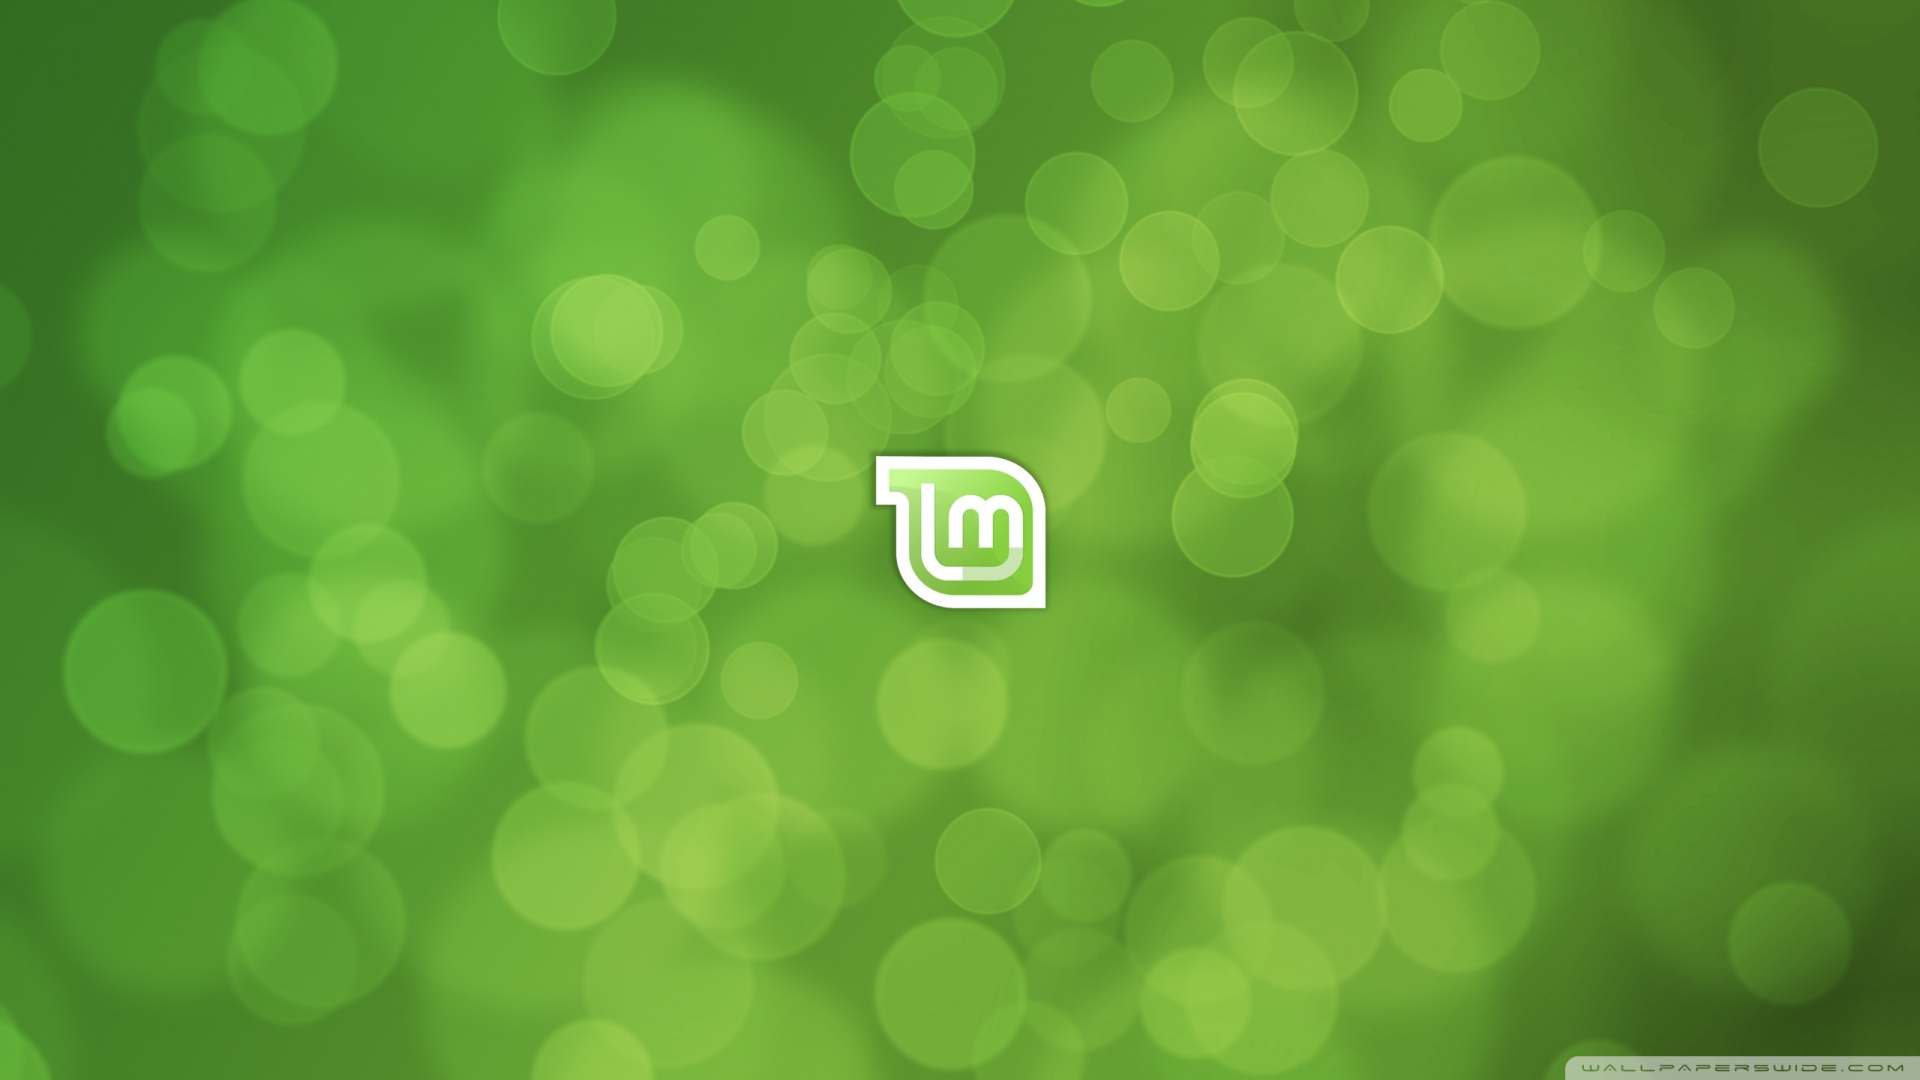 Linux Mint Gnome Wallpaper 1920x1080 Linux Mint Gnome 1920x1080